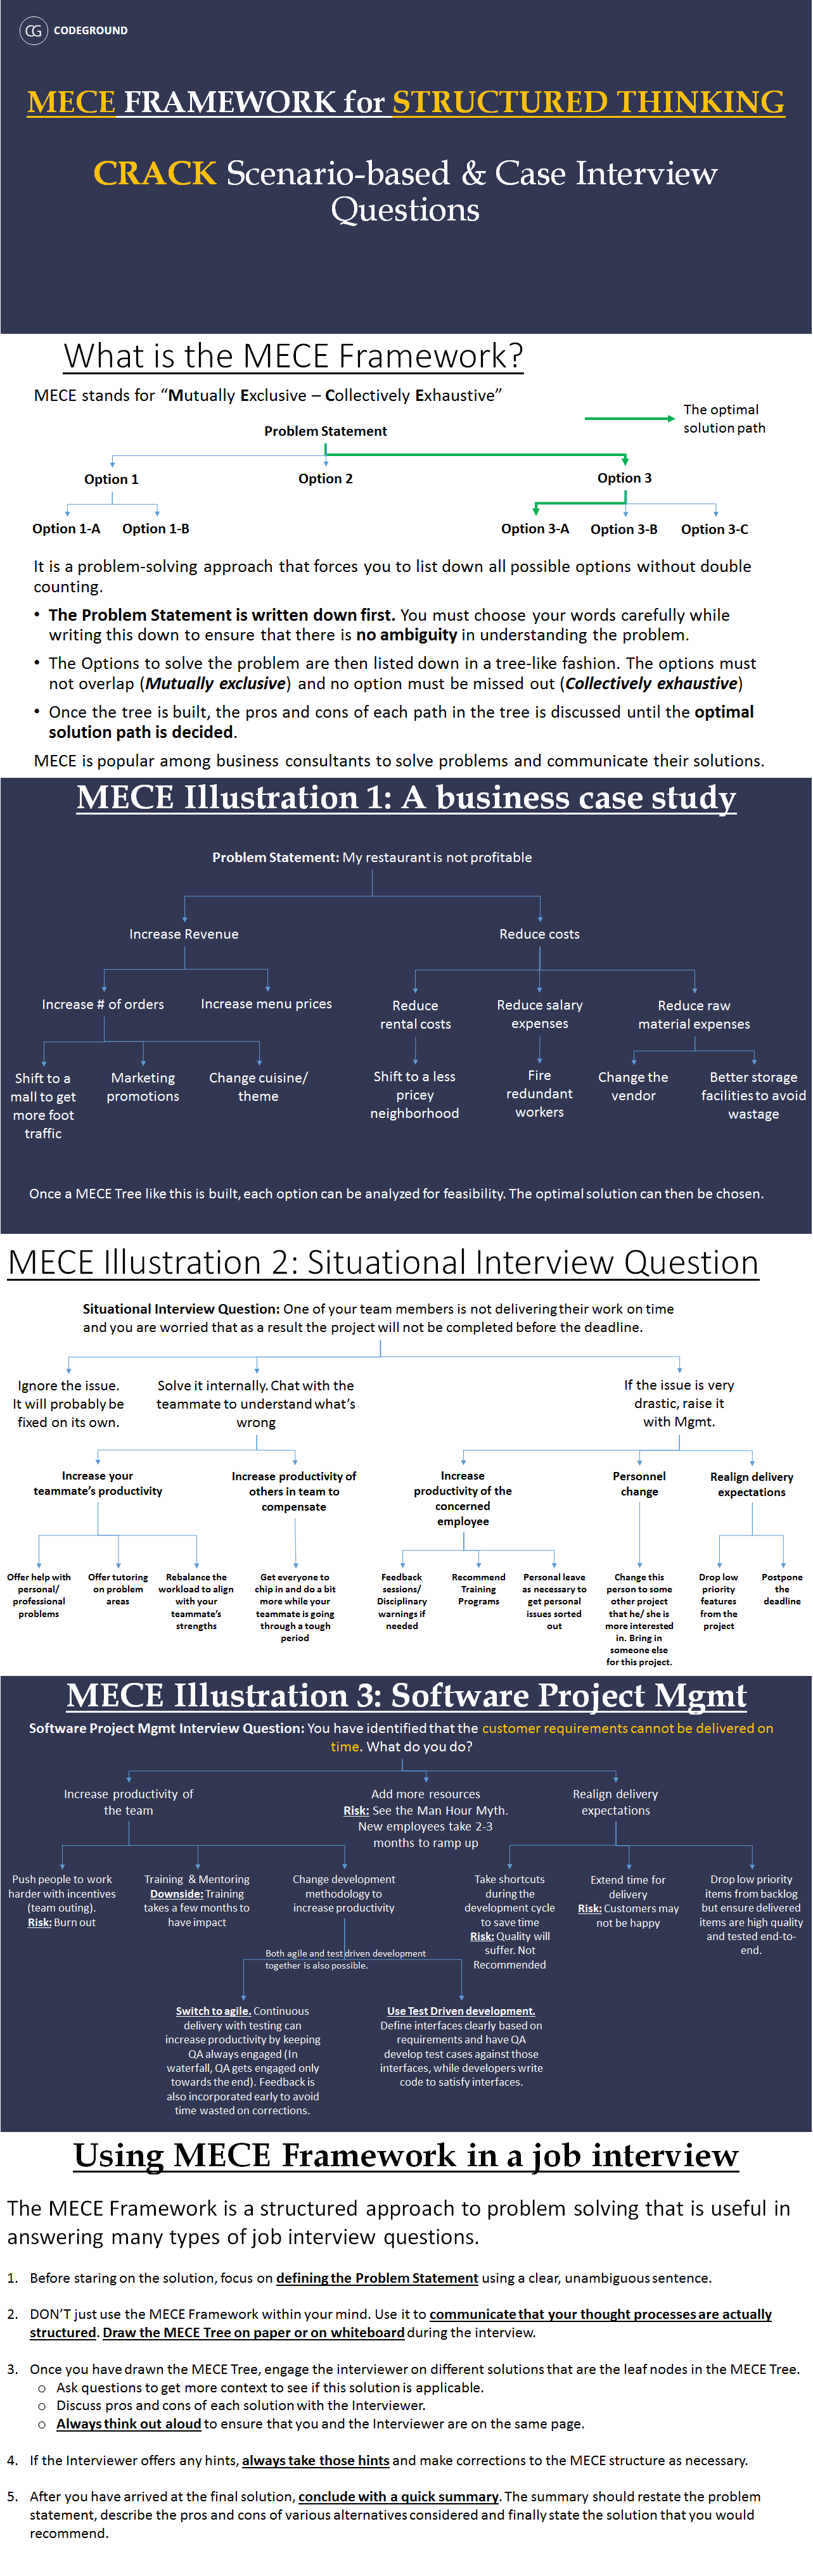 mece-framework-for-structured-thinking